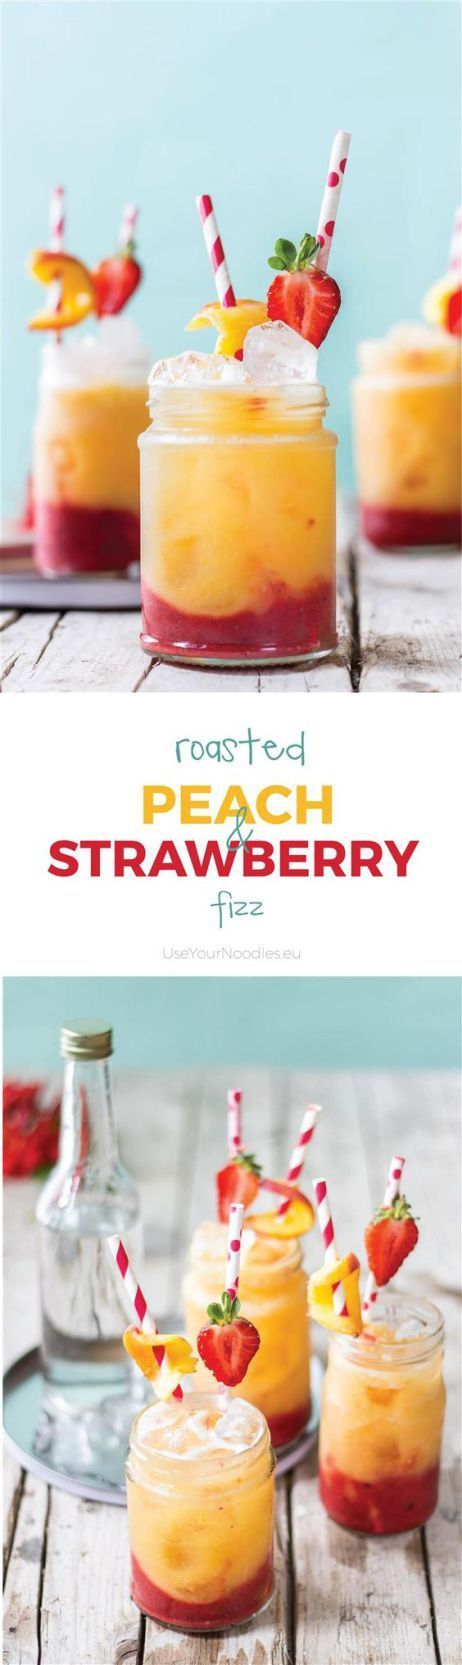 Roasted Peach and Strawberry Fizz Non Alcoholic Party Drinks Recipe via Use Your Noodles - Delightful spring mocktail - roasted peach and strawberry fizz with no added sugar! The BEST Easy Non-Alcoholic Drinks Recipes - Creative Mocktails and Family Friendly, Alcohol-Free, Big Batch Party Beverages for a Crowd!